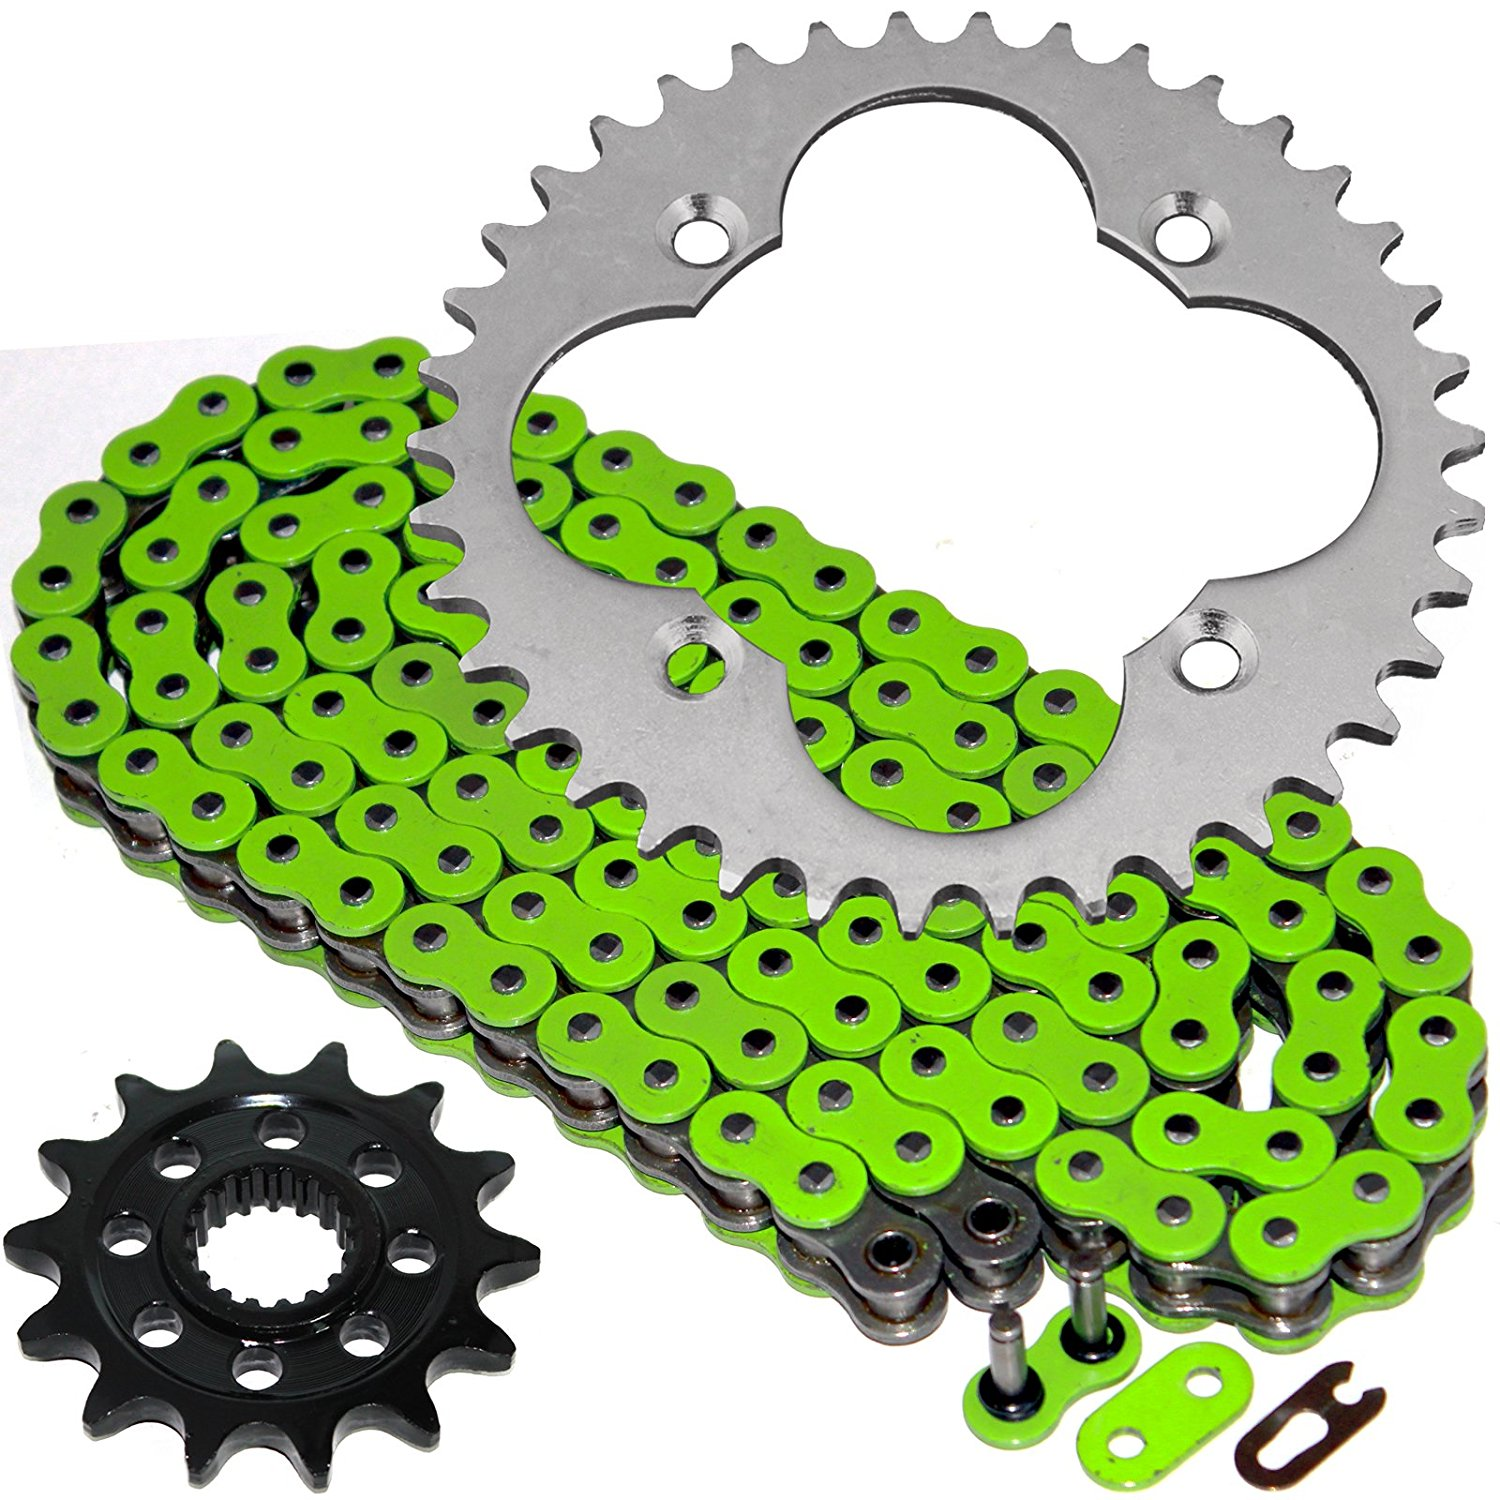 Heavy Duty Green for 2007-2008 Yamaha YFZ450 SE Special Volar Chain and Sprocket Kit